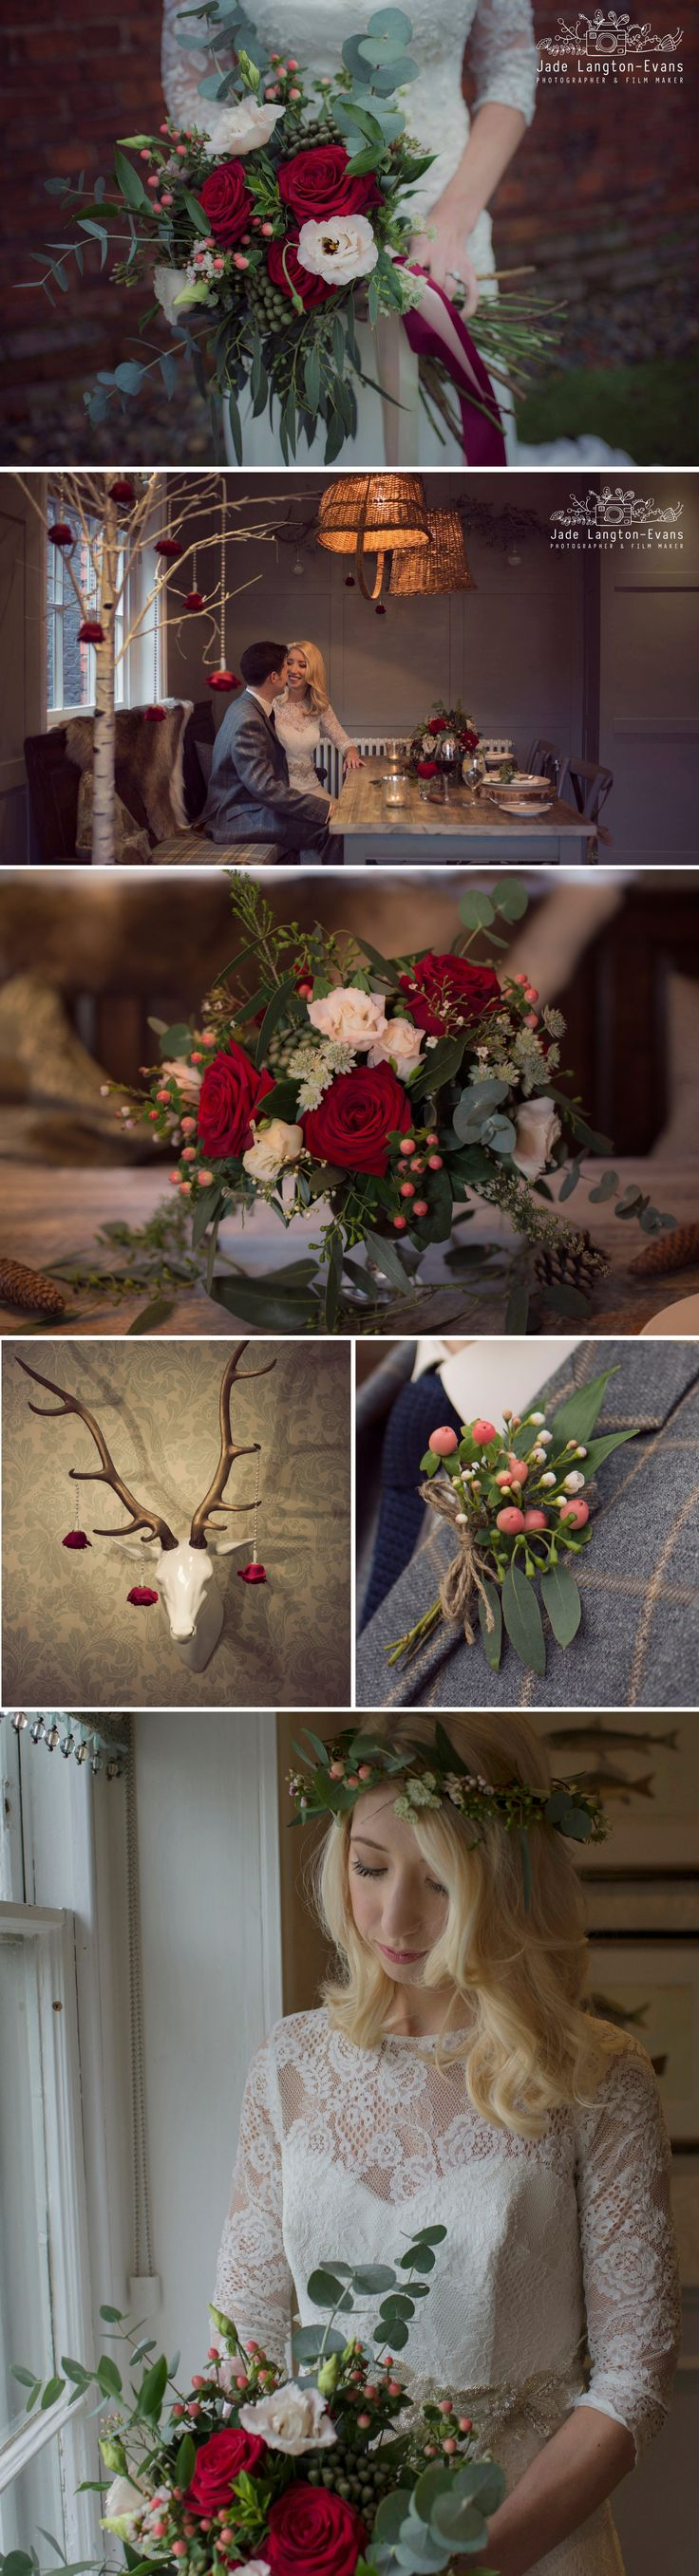 Florissimo, Shropshire | Trends 2017 | Bohemian-chic large hand-tied bridal bouquet of red roses, blush pink lisianthus, white astrantia, red hypericum berries, brunia berries, japonica blossom, eucalyptus and seeded eucalyptus. Roses hanging on silver beads. Buttonhole of japonica blossom, hypericum and eucalyptus. Floral crown of astrantia, hypericum, seeded eucalyptus and ruscus. Styled winter wedding photoshoot, The Townhouse, Oswestry